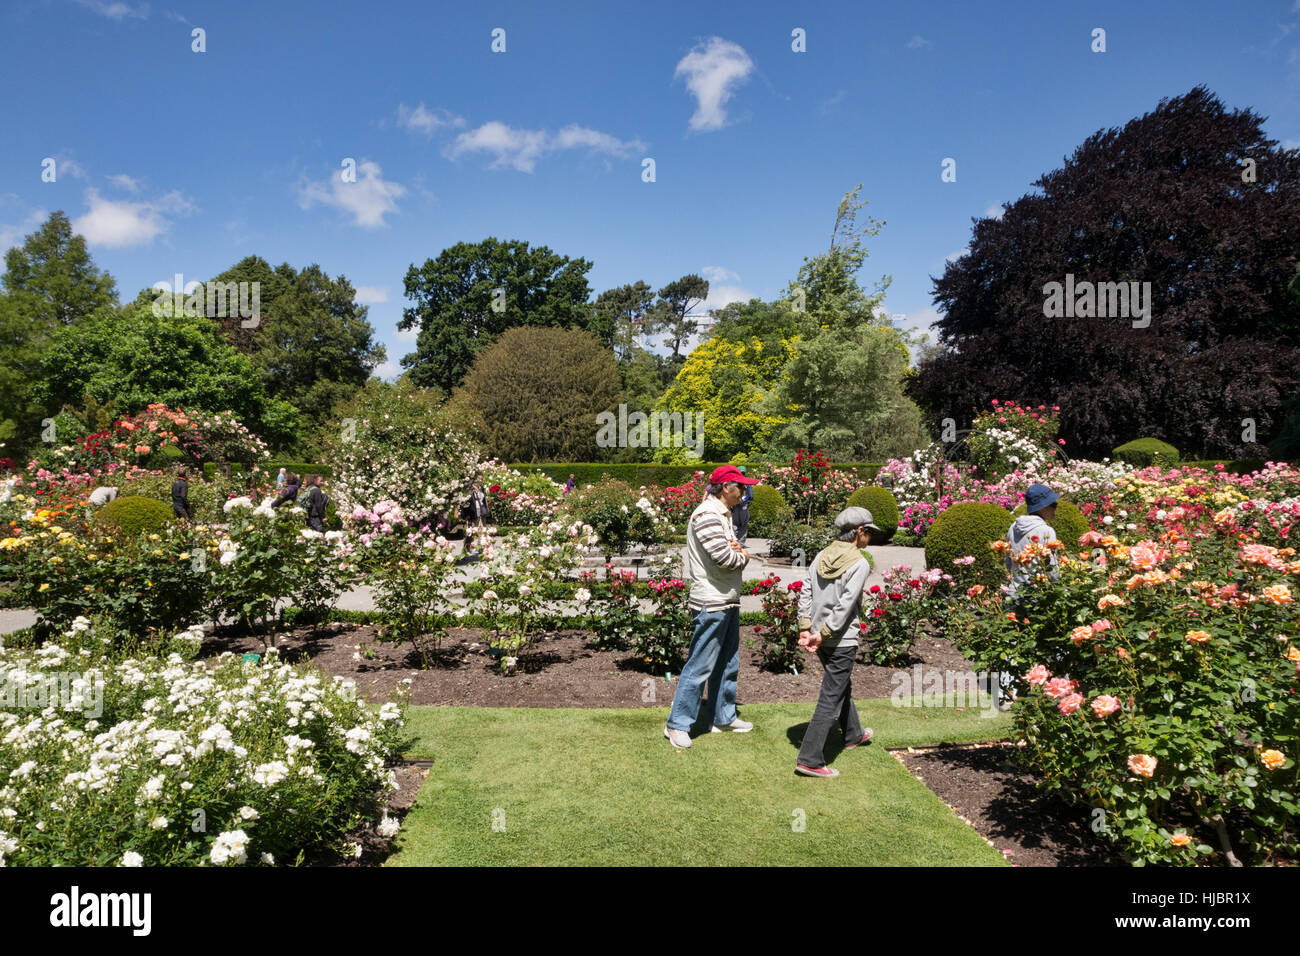 Visitors in the Rose Garden, Christchurch Botanic Gardens, Christchurch, New Zealand - Stock Image